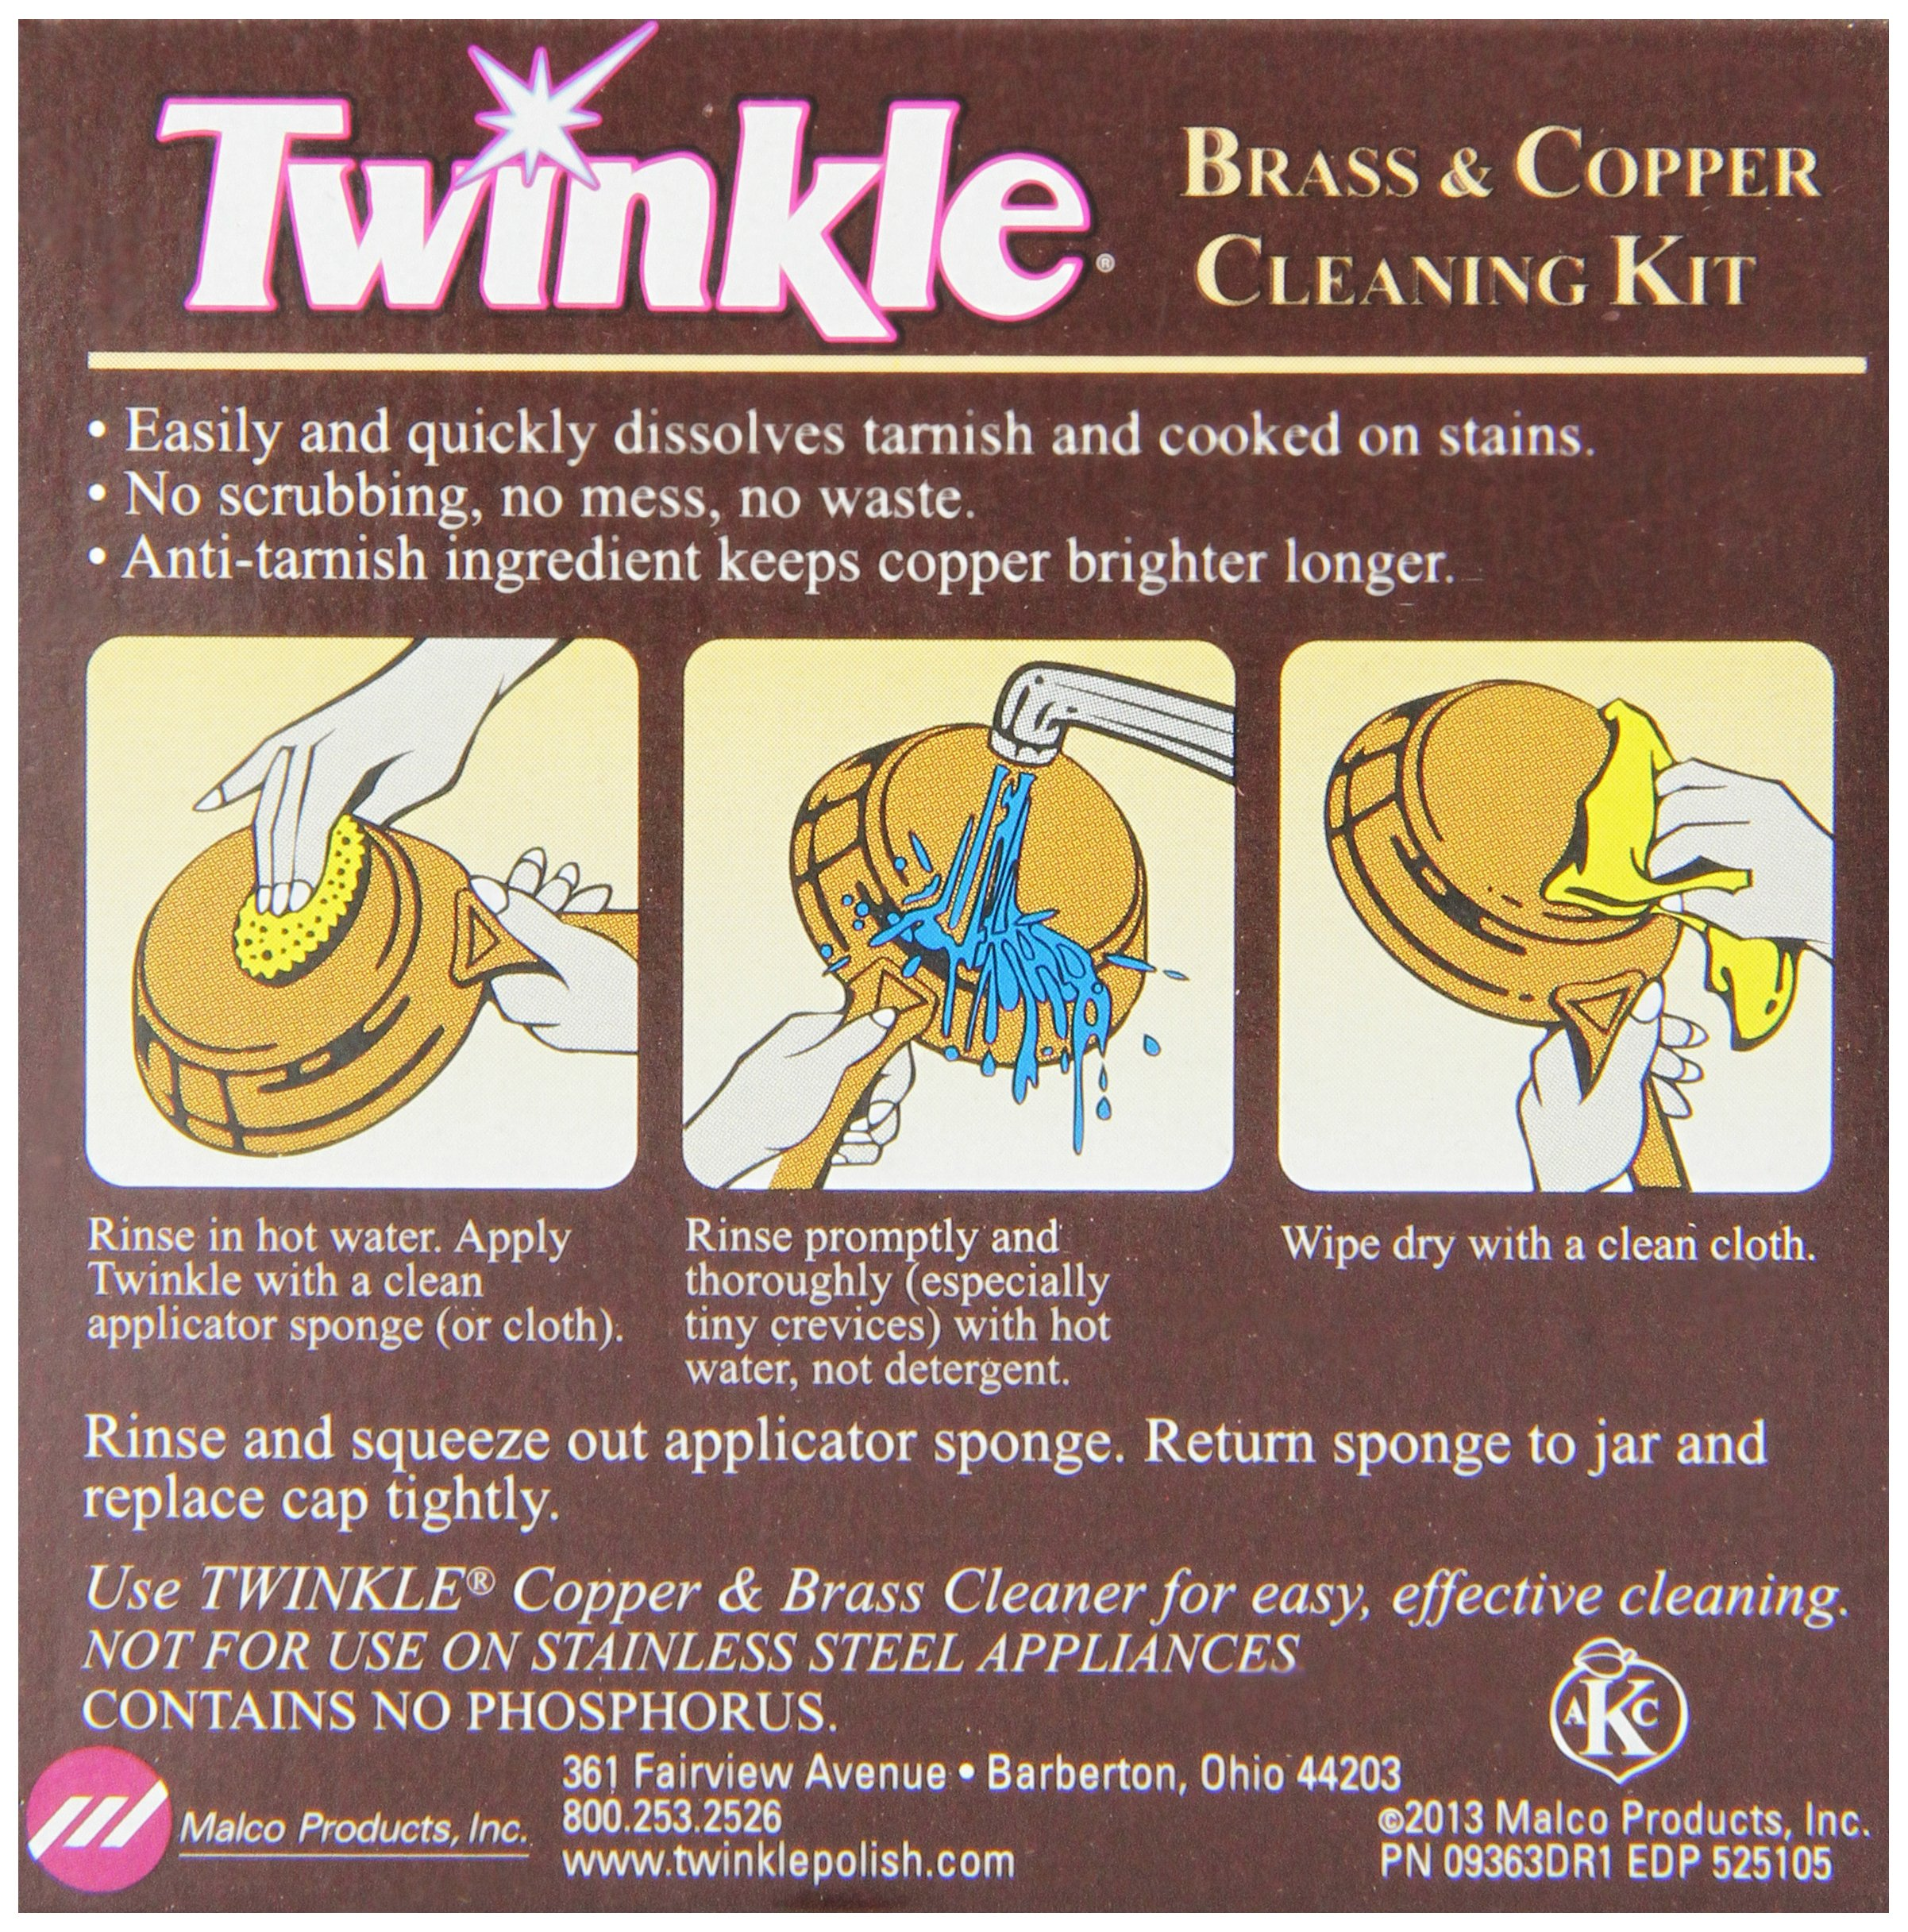 Twinkle Brass & Copper Cleaning Kit, Easy Effective Cream Formula, 4 3/8-Ounce Box (Pack of 12) by Twinkle